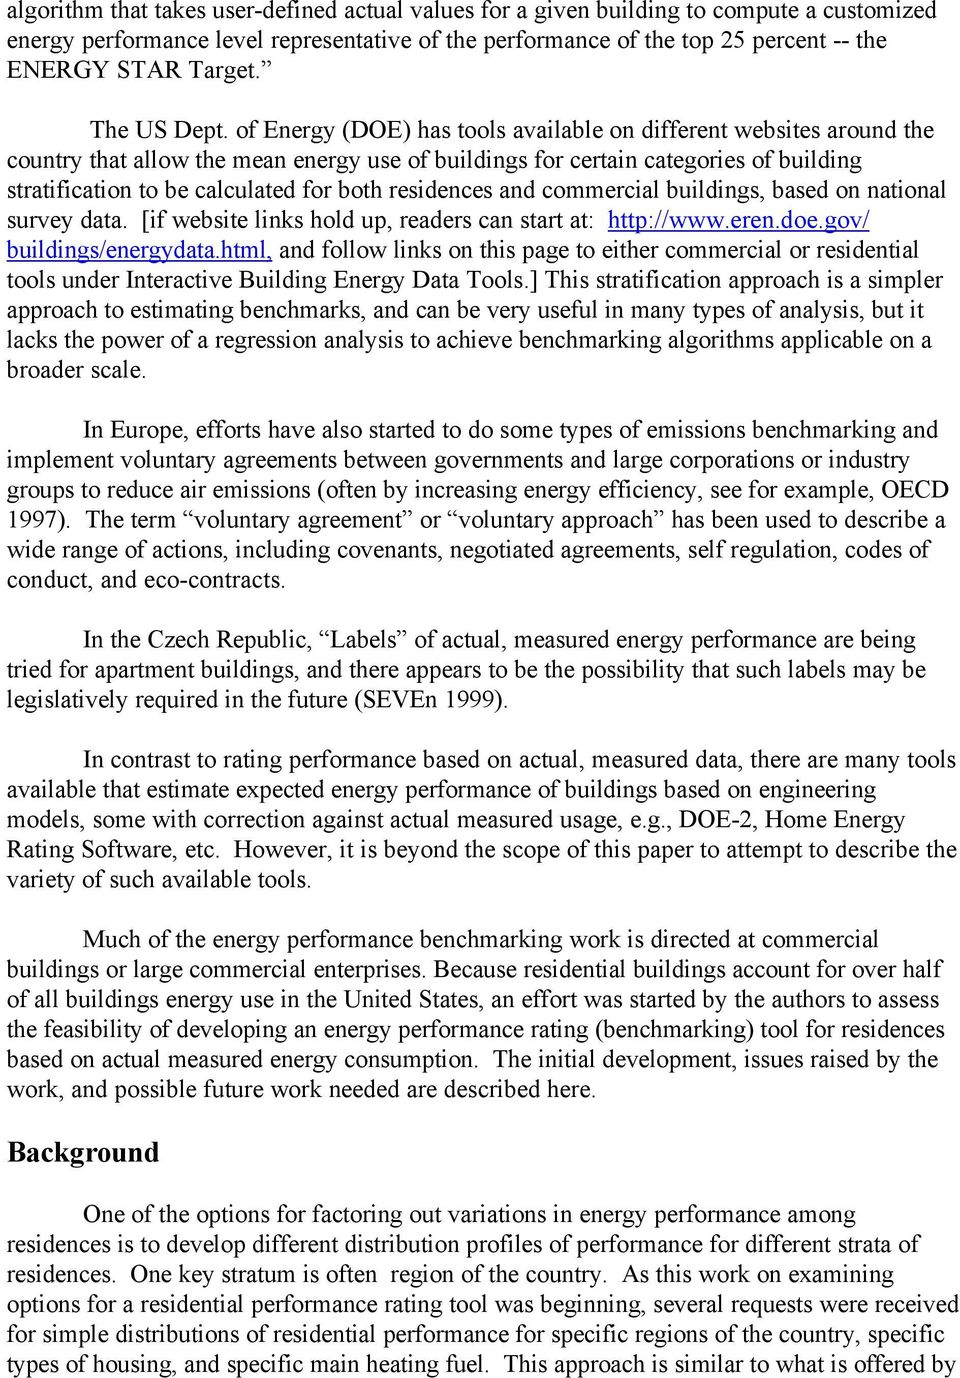 of Energy (DOE) has tools available on different websites around the country that allow the mean energy use of buildings for certain categories of building stratification to be calculated for both